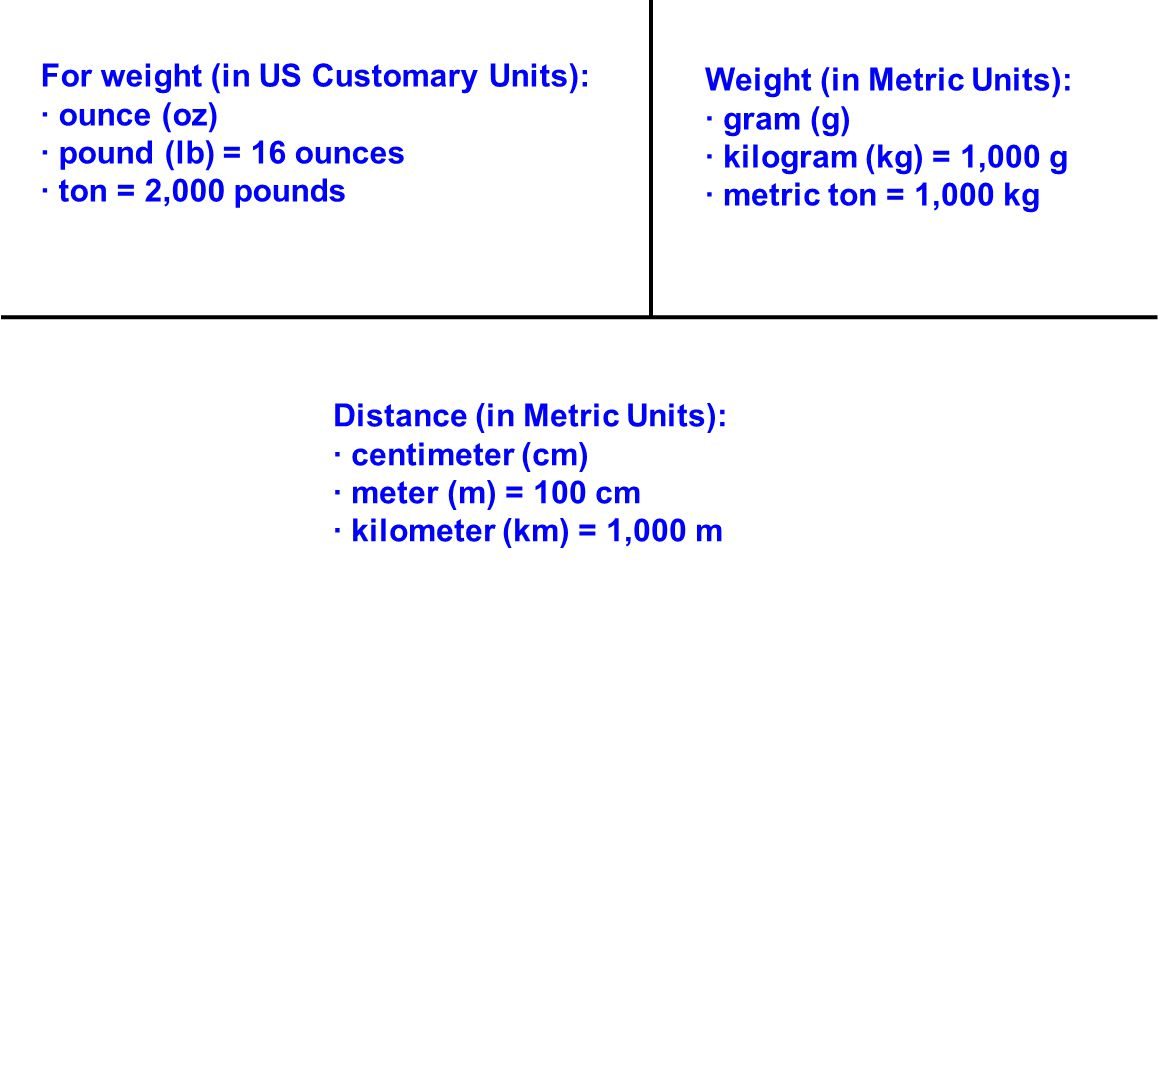 For weight (in US Customary Units): · ounce (oz) · pound (lb) = 16 ounces · ton = 2,000 pounds Distance (in Metric Units): · centimeter (cm) · meter (m) = 100 cm · kilometer (km) = 1,000 m Weight (in Metric Units): · gram (g) · kilogram (kg) = 1,000 g · metric ton = 1,000 kg